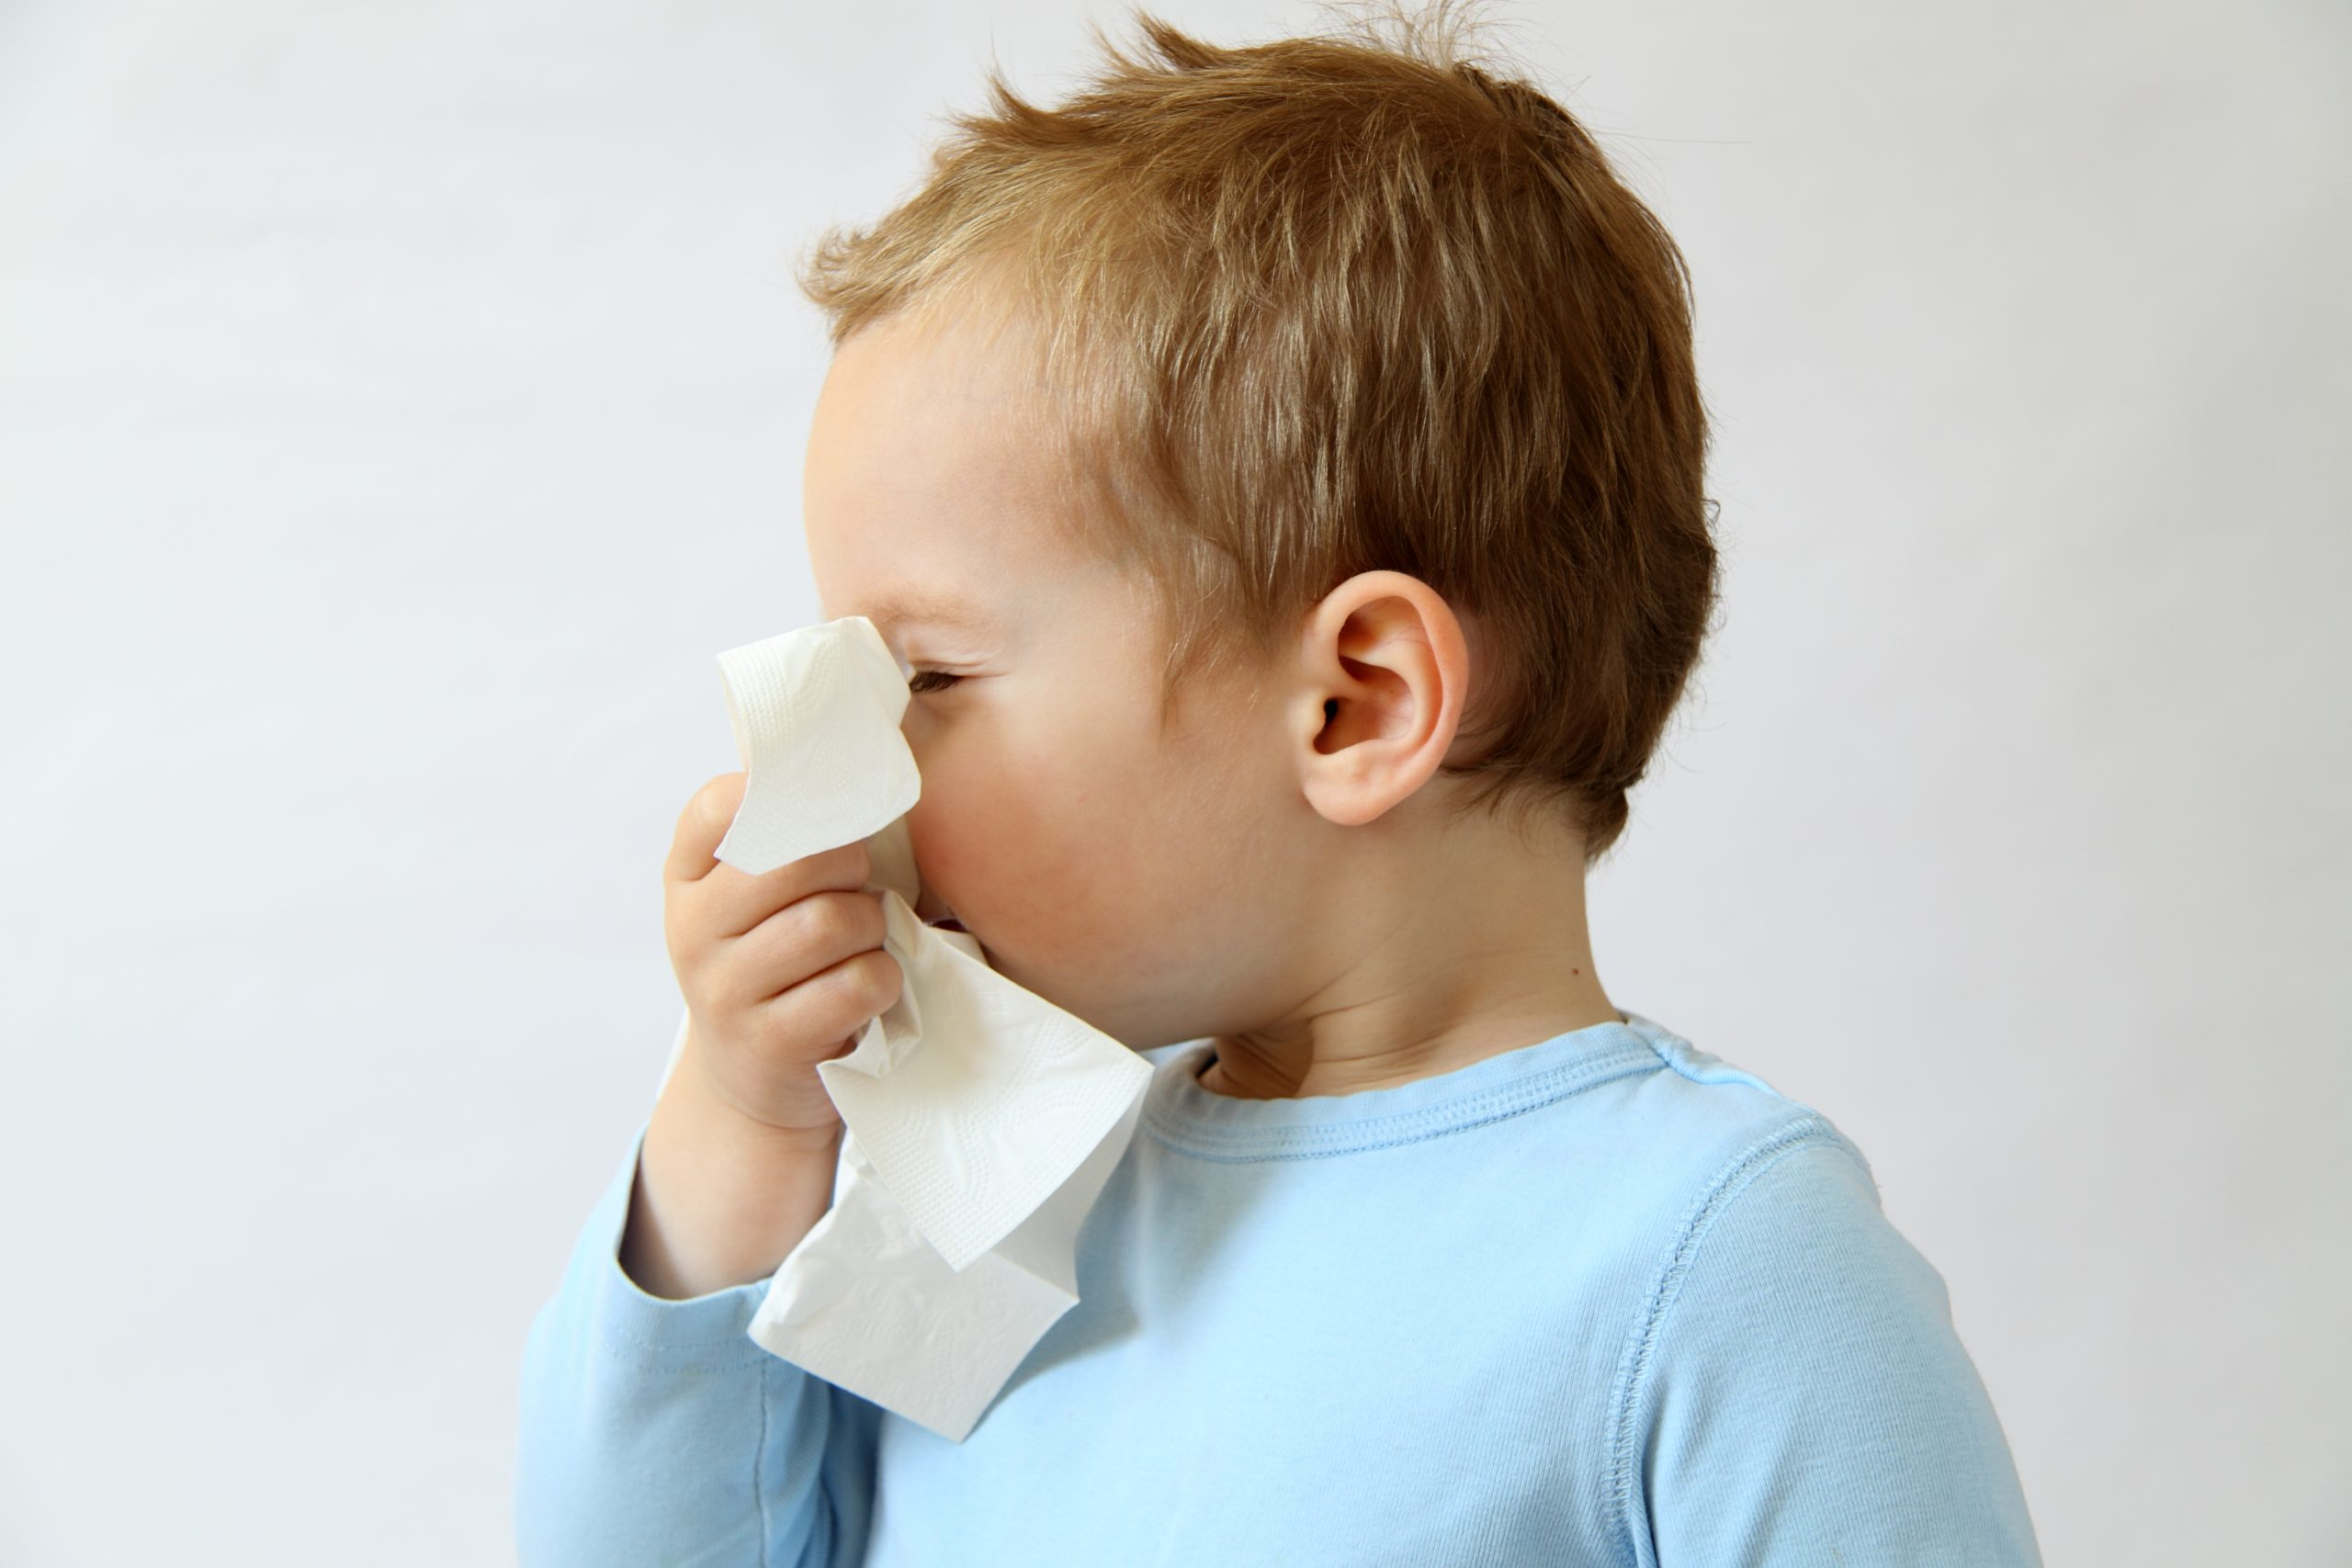 Snotty noses: illness or a necessary part of childhood?